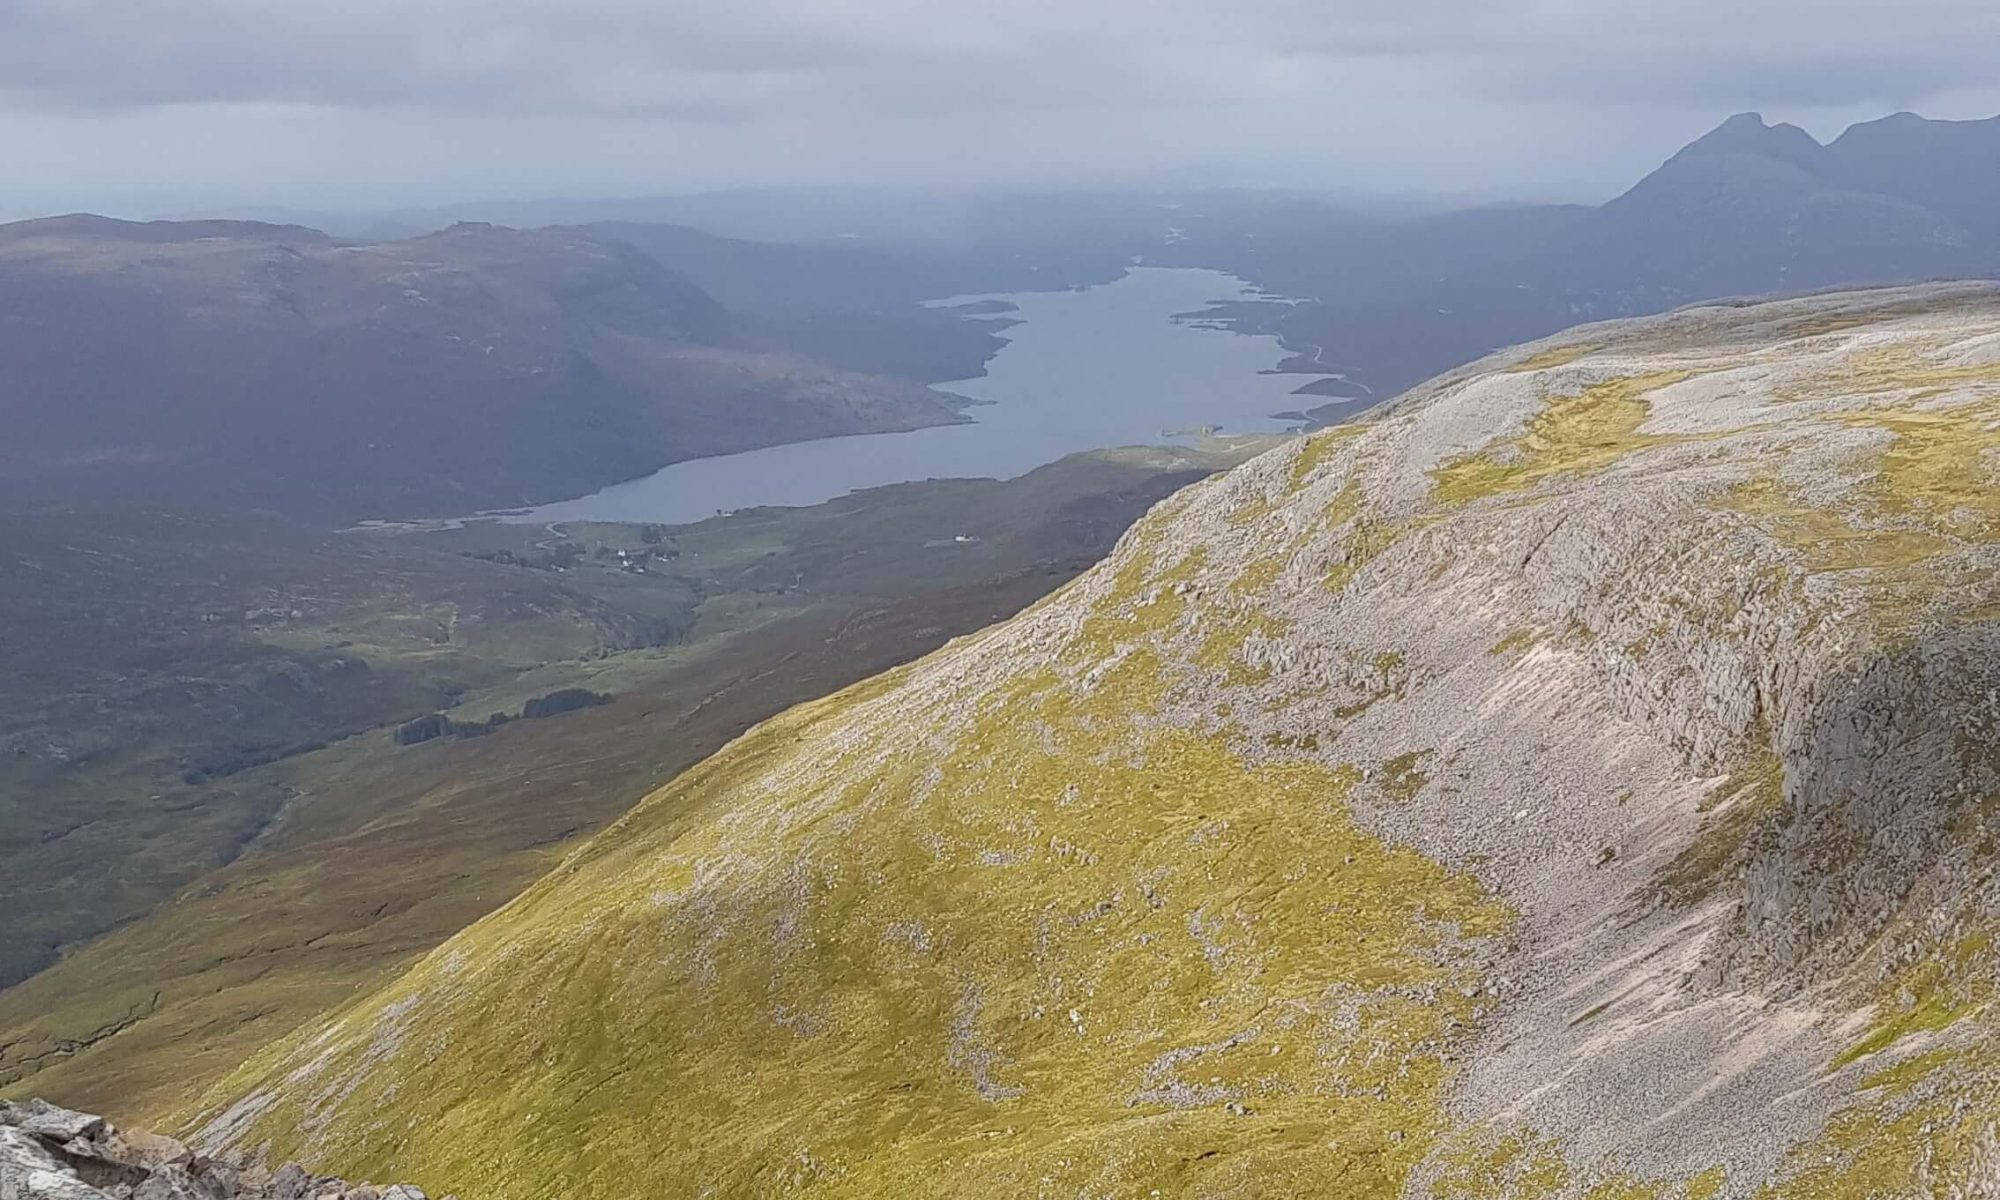 Loch Assynt as seen from the slopes of Conival